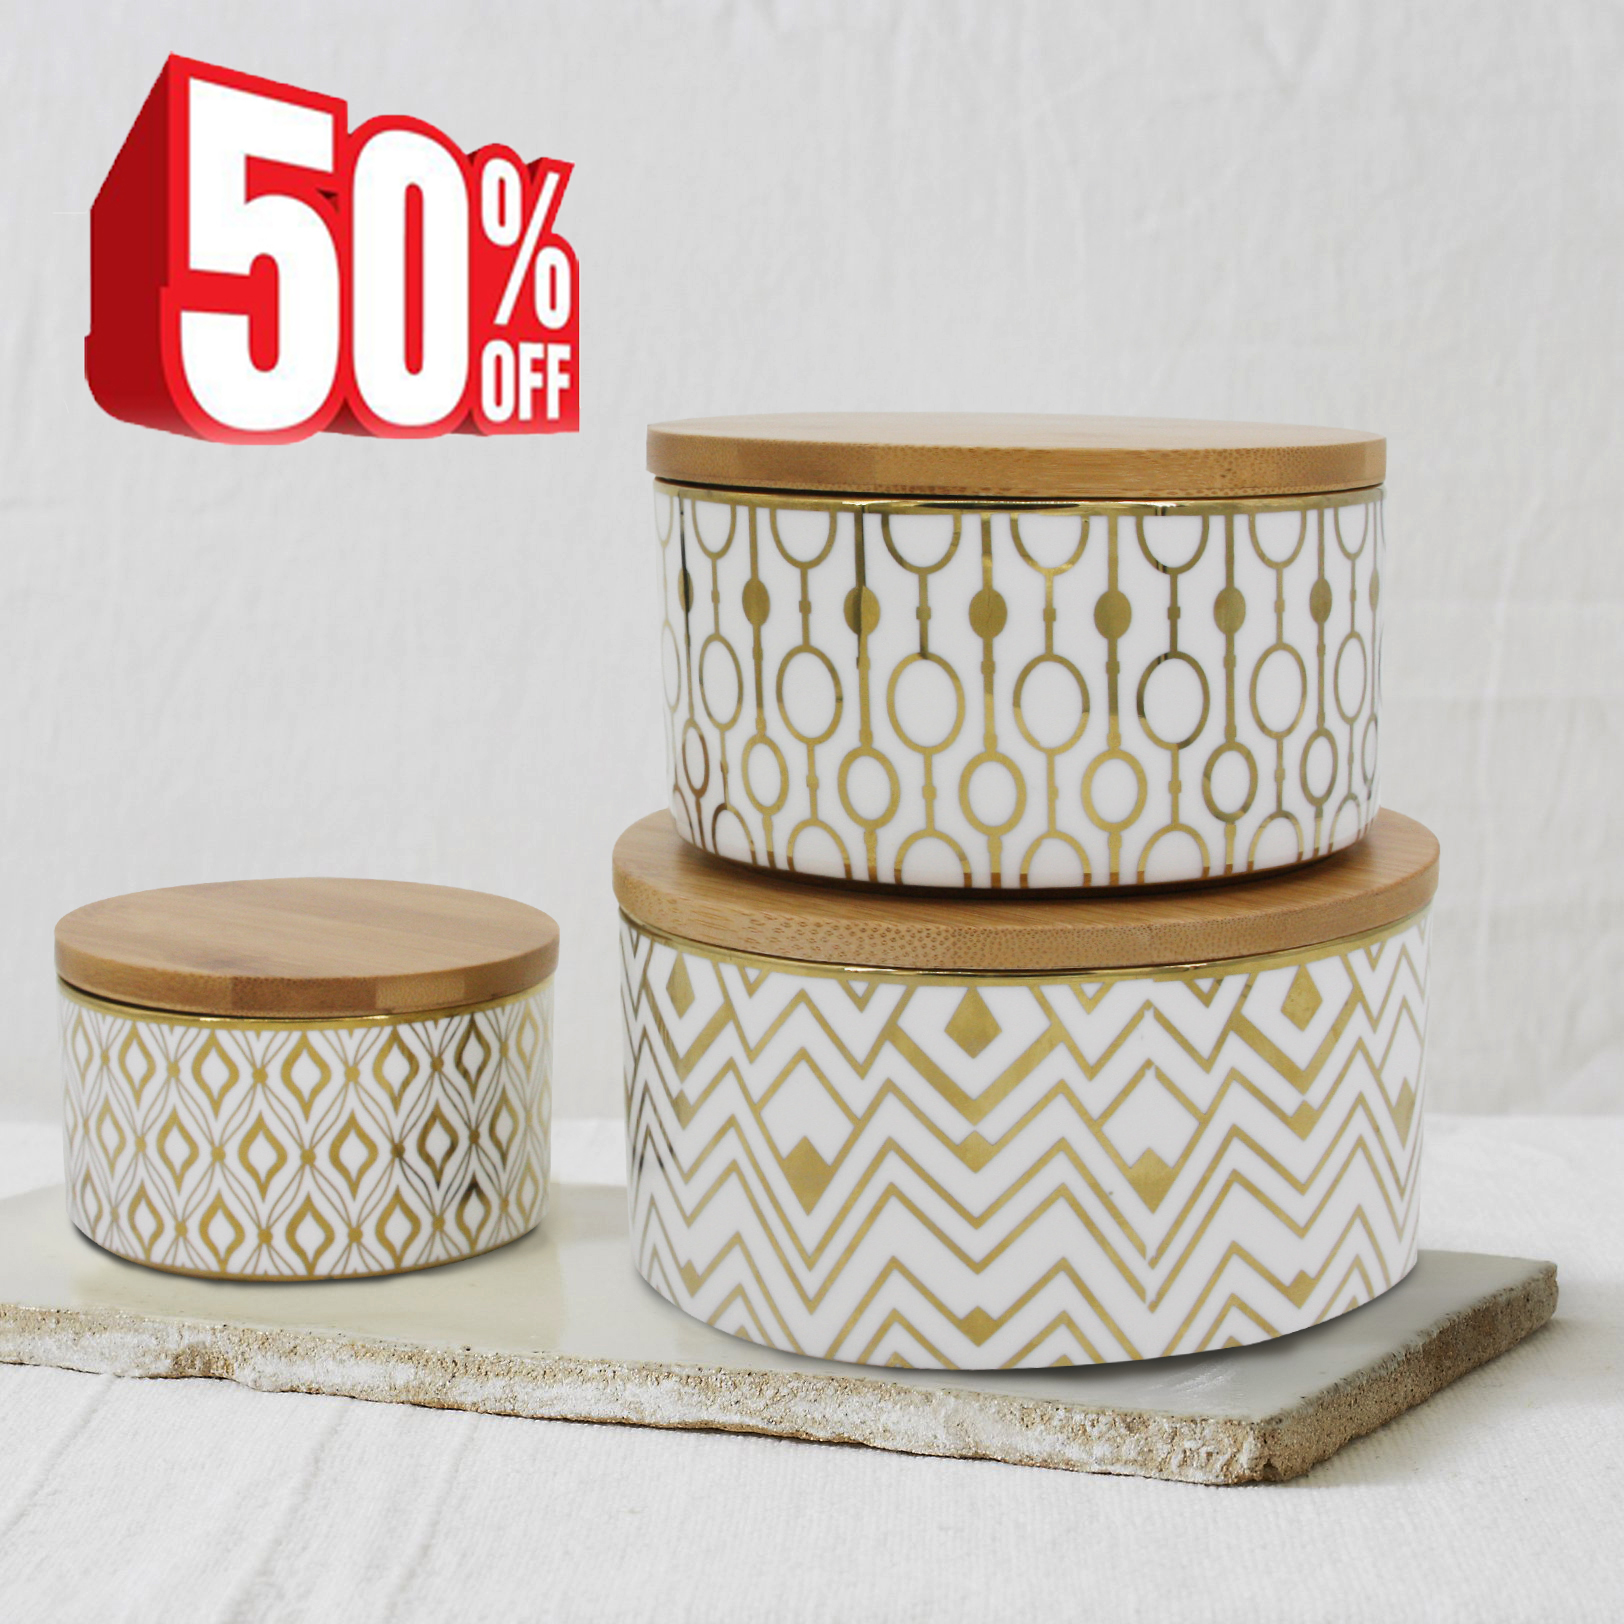 Canister Sets Kitchen Decorative Container Jars Airtight Bamboo Lids Gold Geometric for Tea Coffee & Canister Sets Kitchen Decorative Container Jars Airtight Bamboo Lids ...